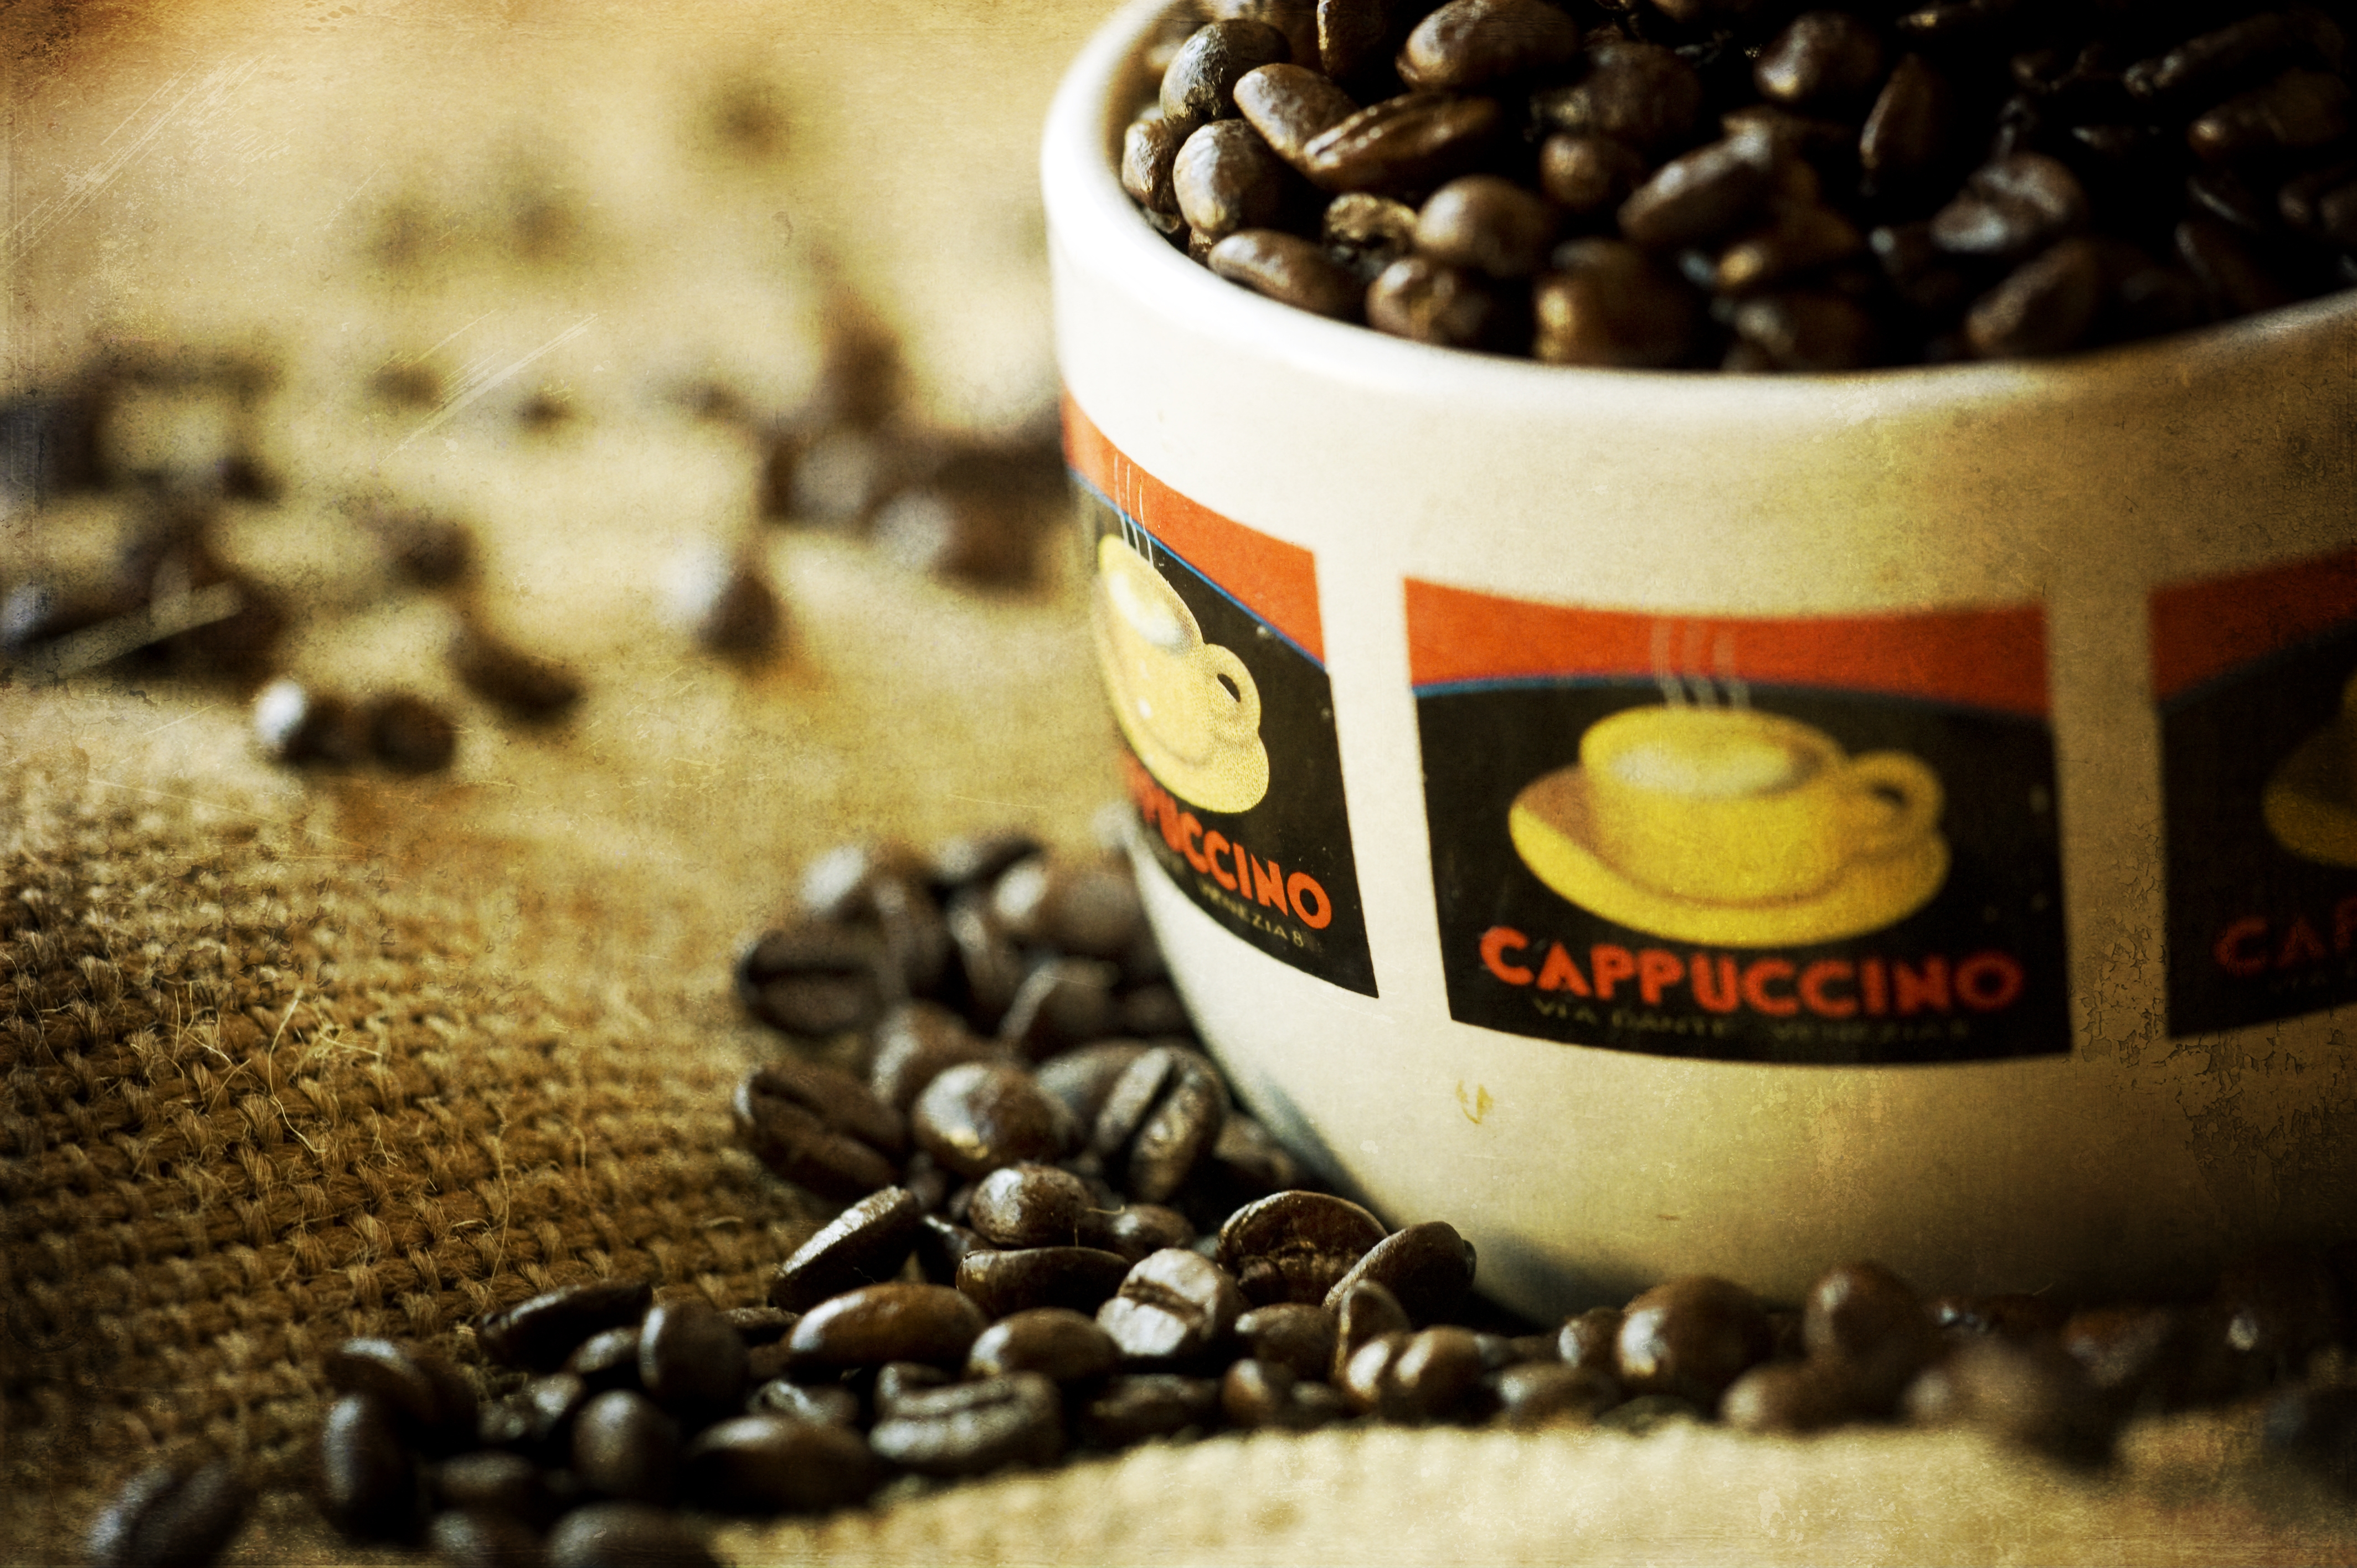 125040 download wallpaper Food, Coffee, Cup, Cappuccino, Grains, Grain, Bag, Sack screensavers and pictures for free